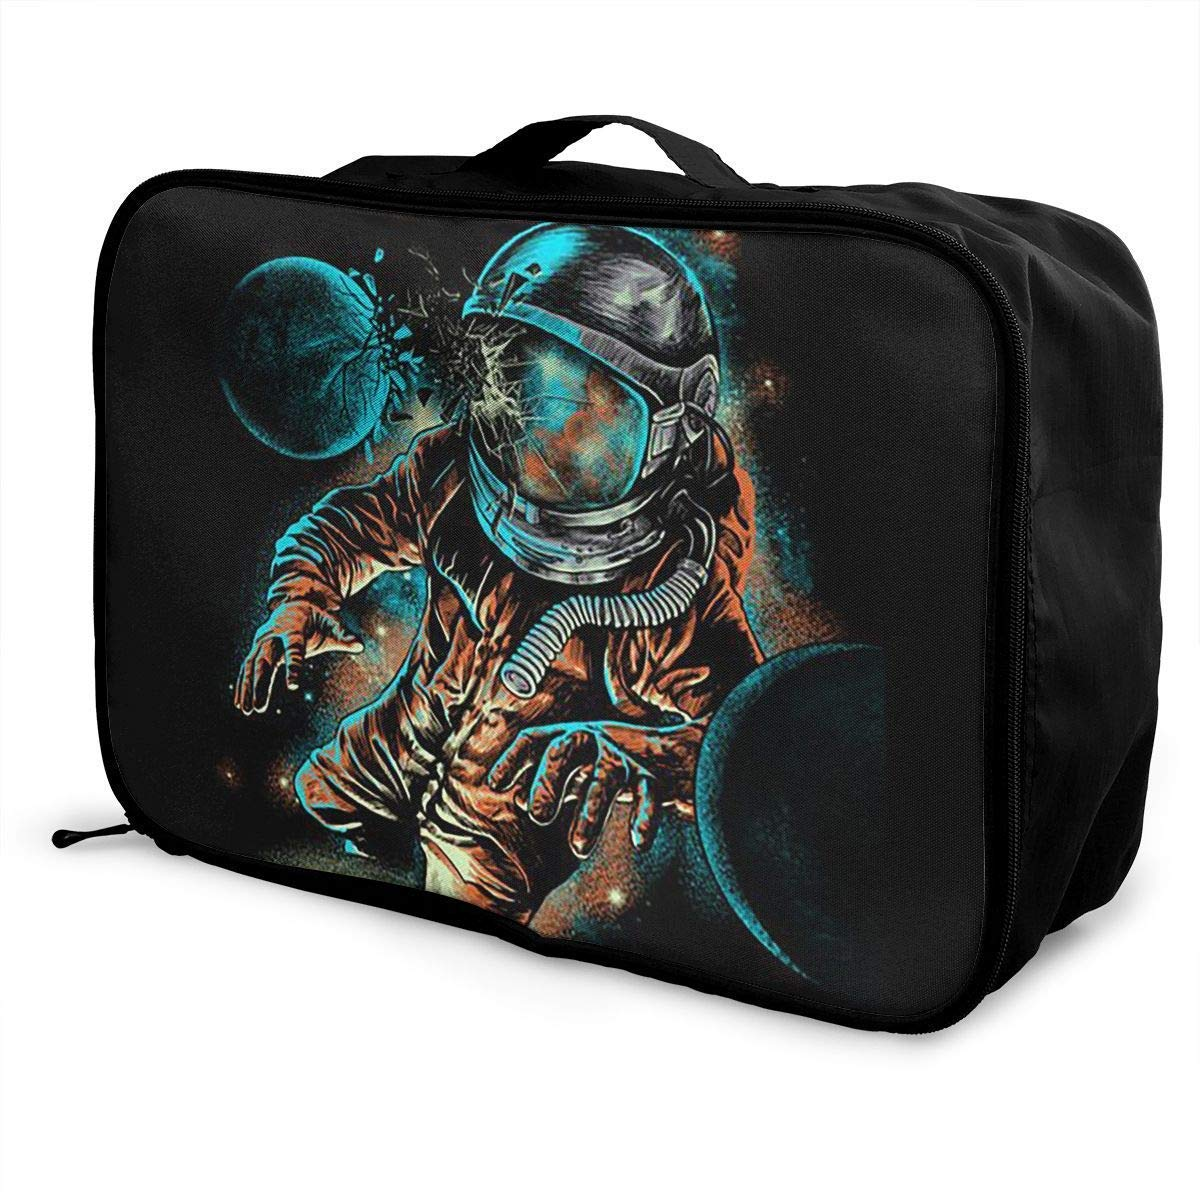 JTRVW Luggage Bags for Travel Portable Luggage Duffel Bag Space Astronauts Travel Bags Carry-on in Trolley Handle